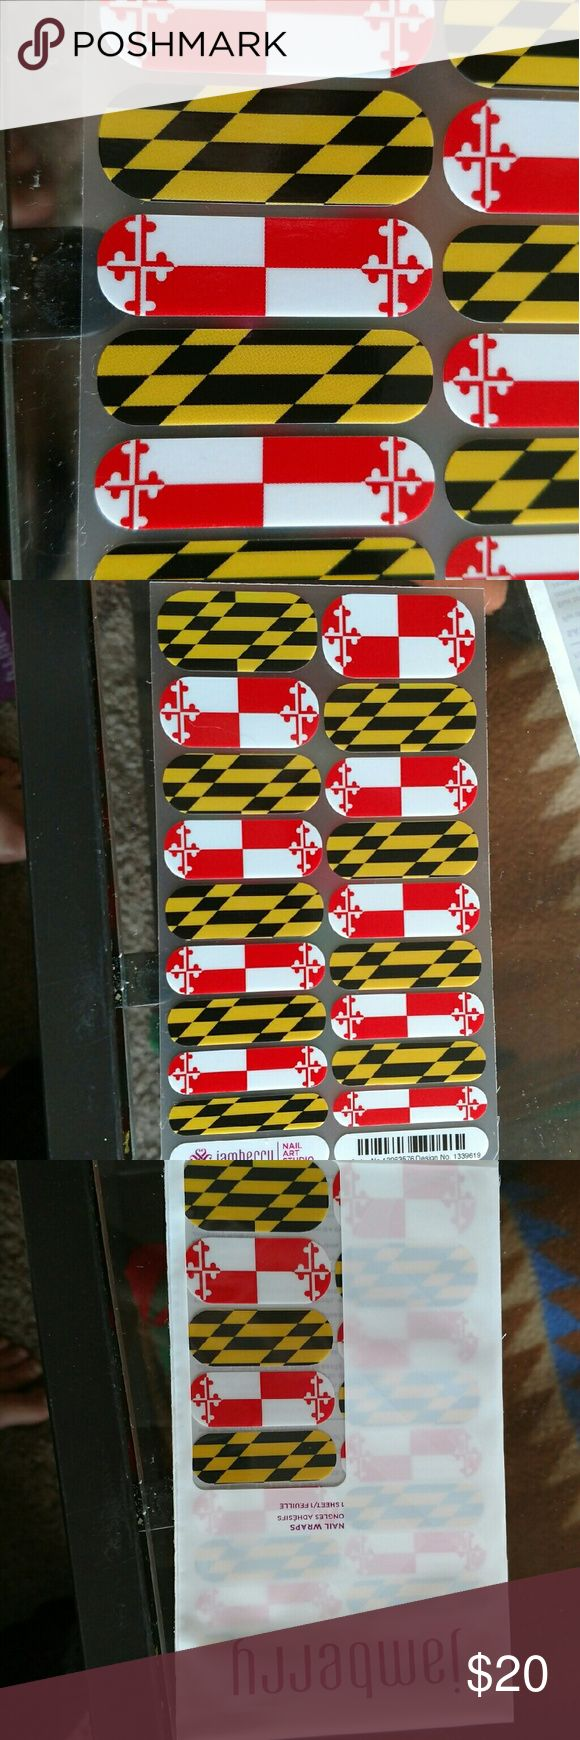 Maryland flag jamberry wraps Brand new half sheet jamberry NAS Maryland flag wraps. I personally designed these wraps on the nail art studio.Brand New half sheet of jamberry wraps. Jamberry wraps can last 2 weeks or more on nails. Each half sheet is enough for one manicure, one pedicure, and 2 accent nails. Each purchase comes with application instructions! Bundle to save! Jamberry Other